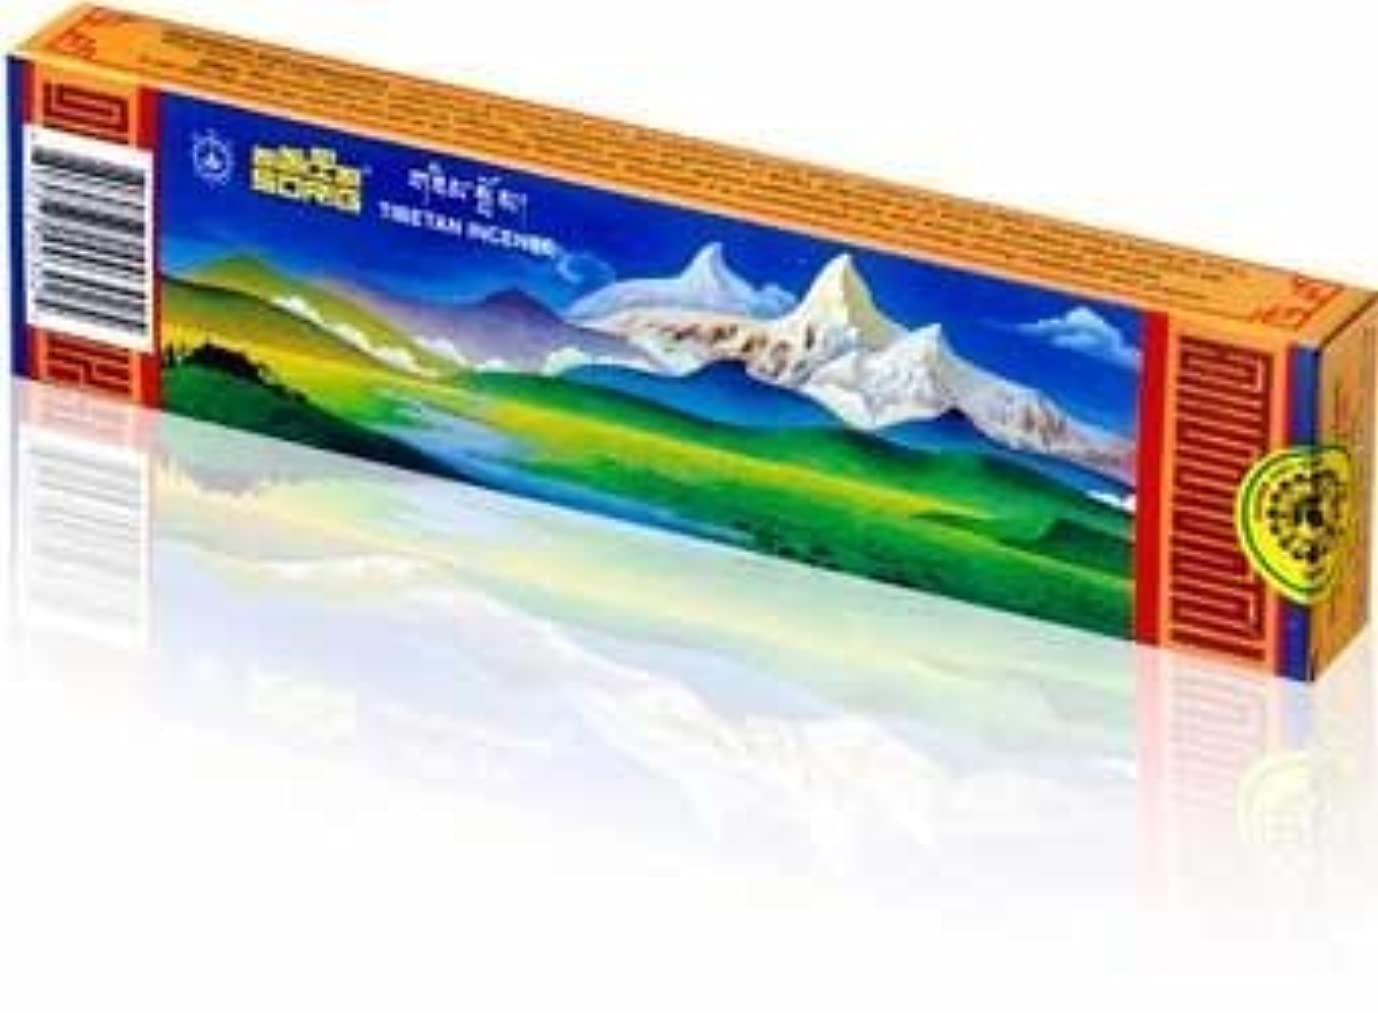 起きるゴネリル喜びSorig Natural Handmade Tibetan Incense Sticks by Men-Tsee-Khang- 20/40/60 Count (40) by Men-Tsee-Khang [並行輸入品]